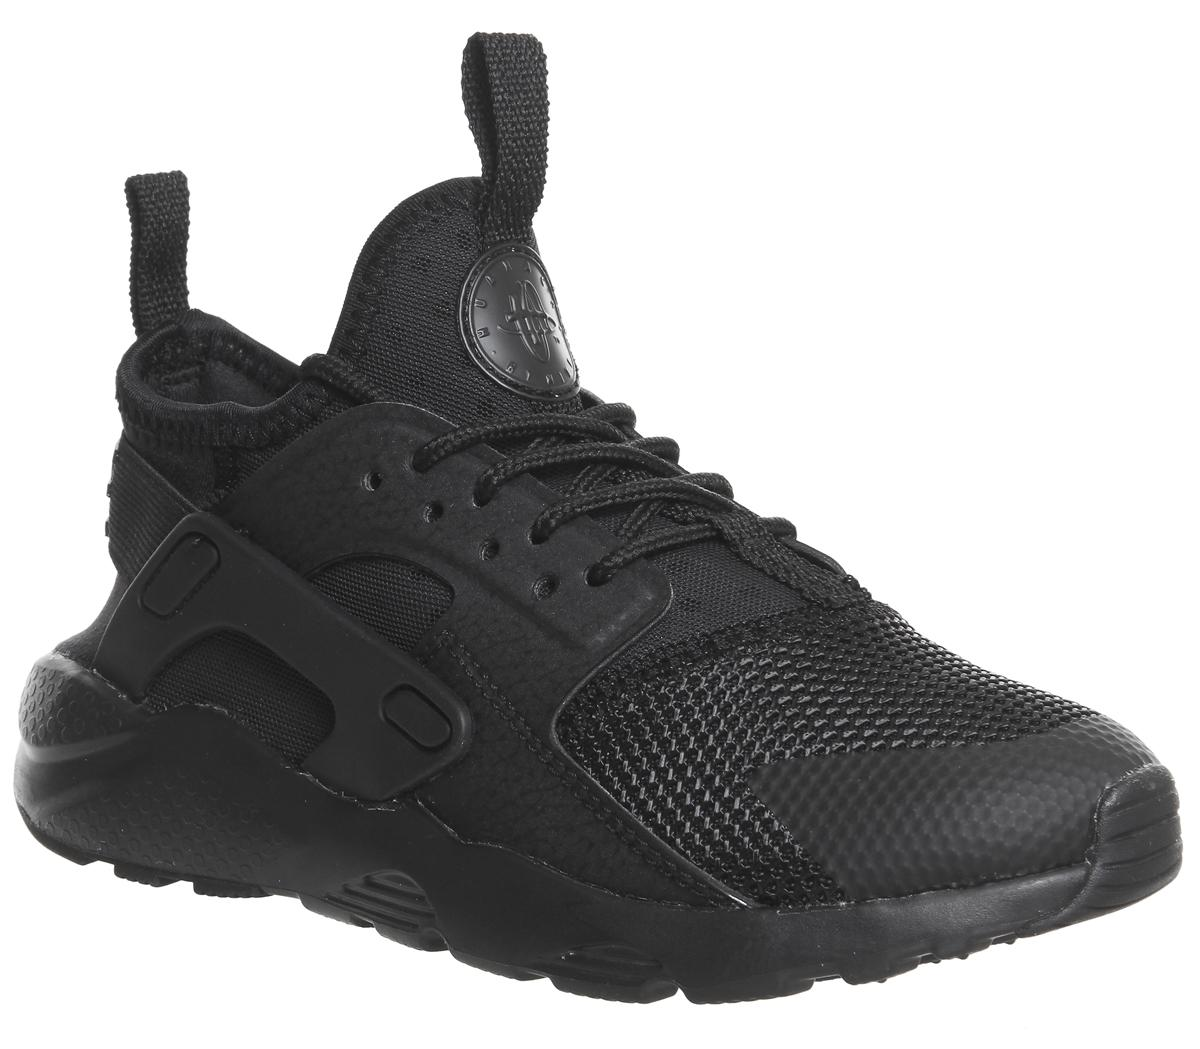 b25f7c10674 Nike Huarache Run Ultra Ps Trainers Black - Unisex